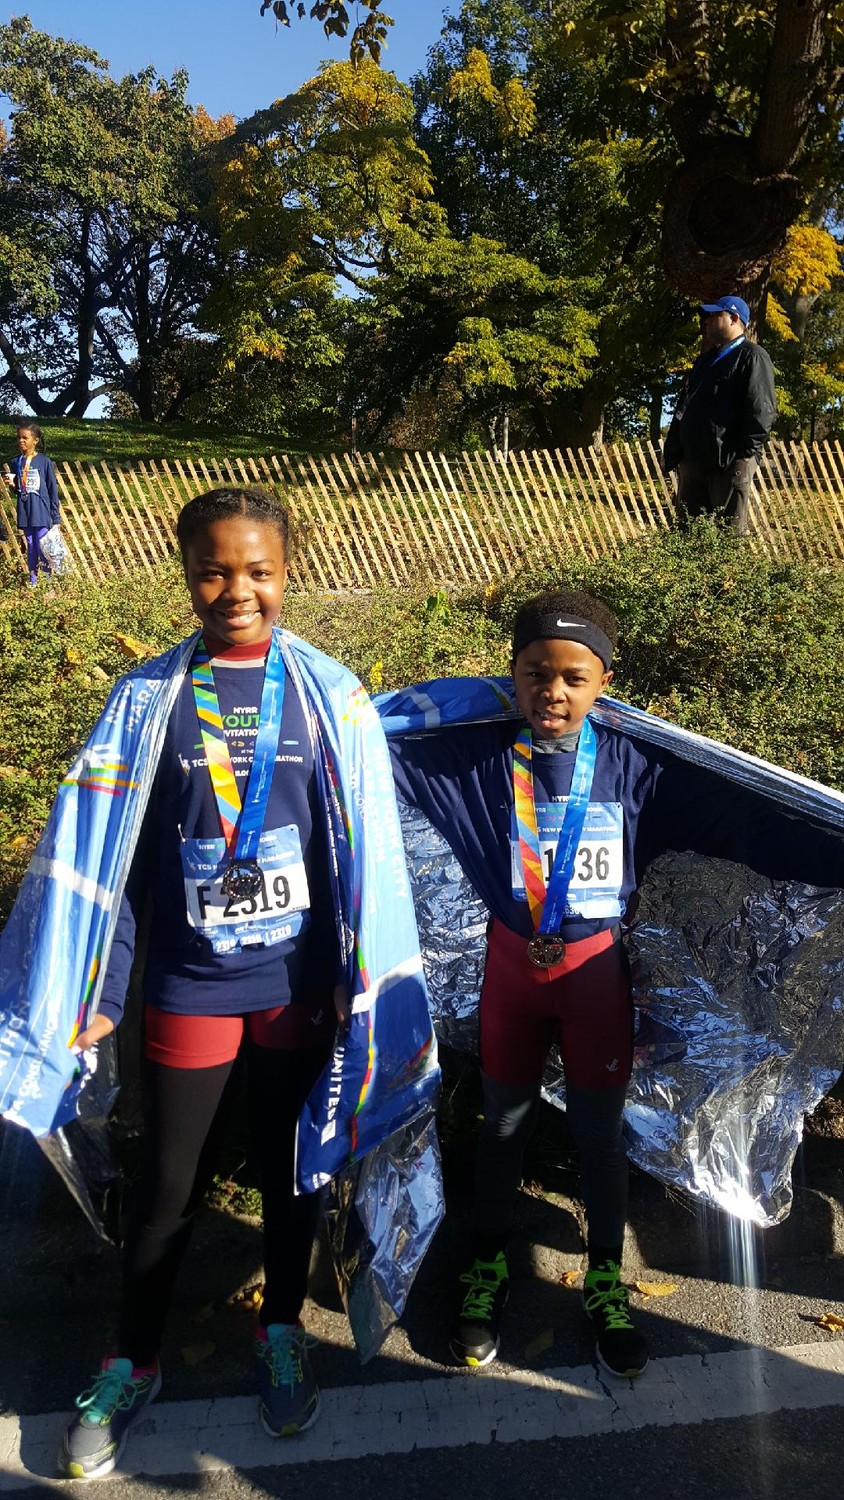 Abigail and Adam Jefferies ran in the junior New York Marathon last year, and plan to do so again on Nov. 6.